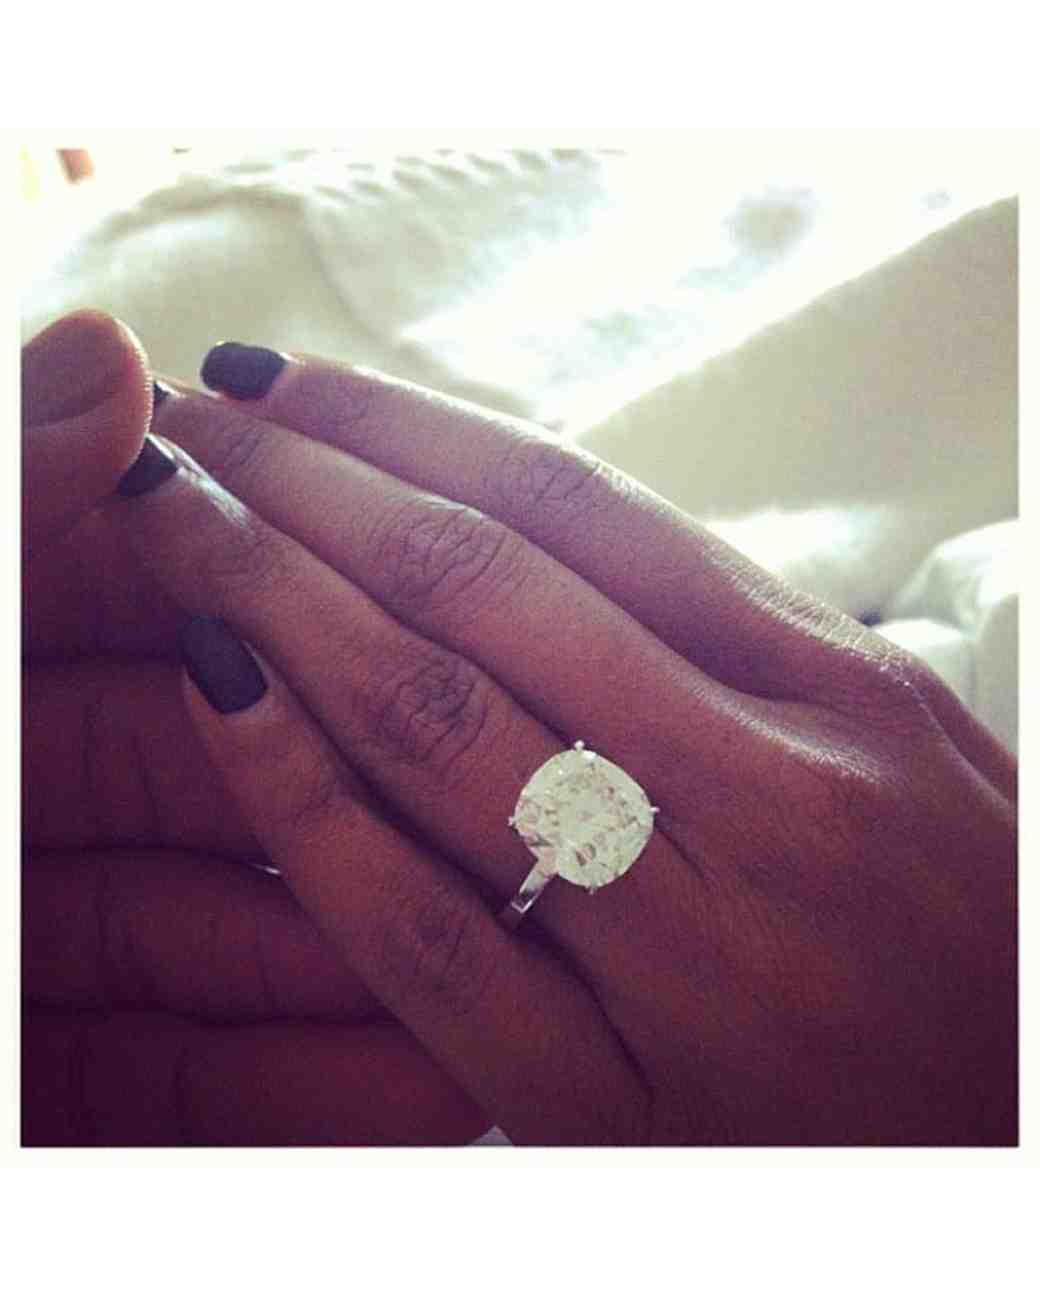 engaged-instagram-gabrielle-union-dwayne-wade-0316.jpg